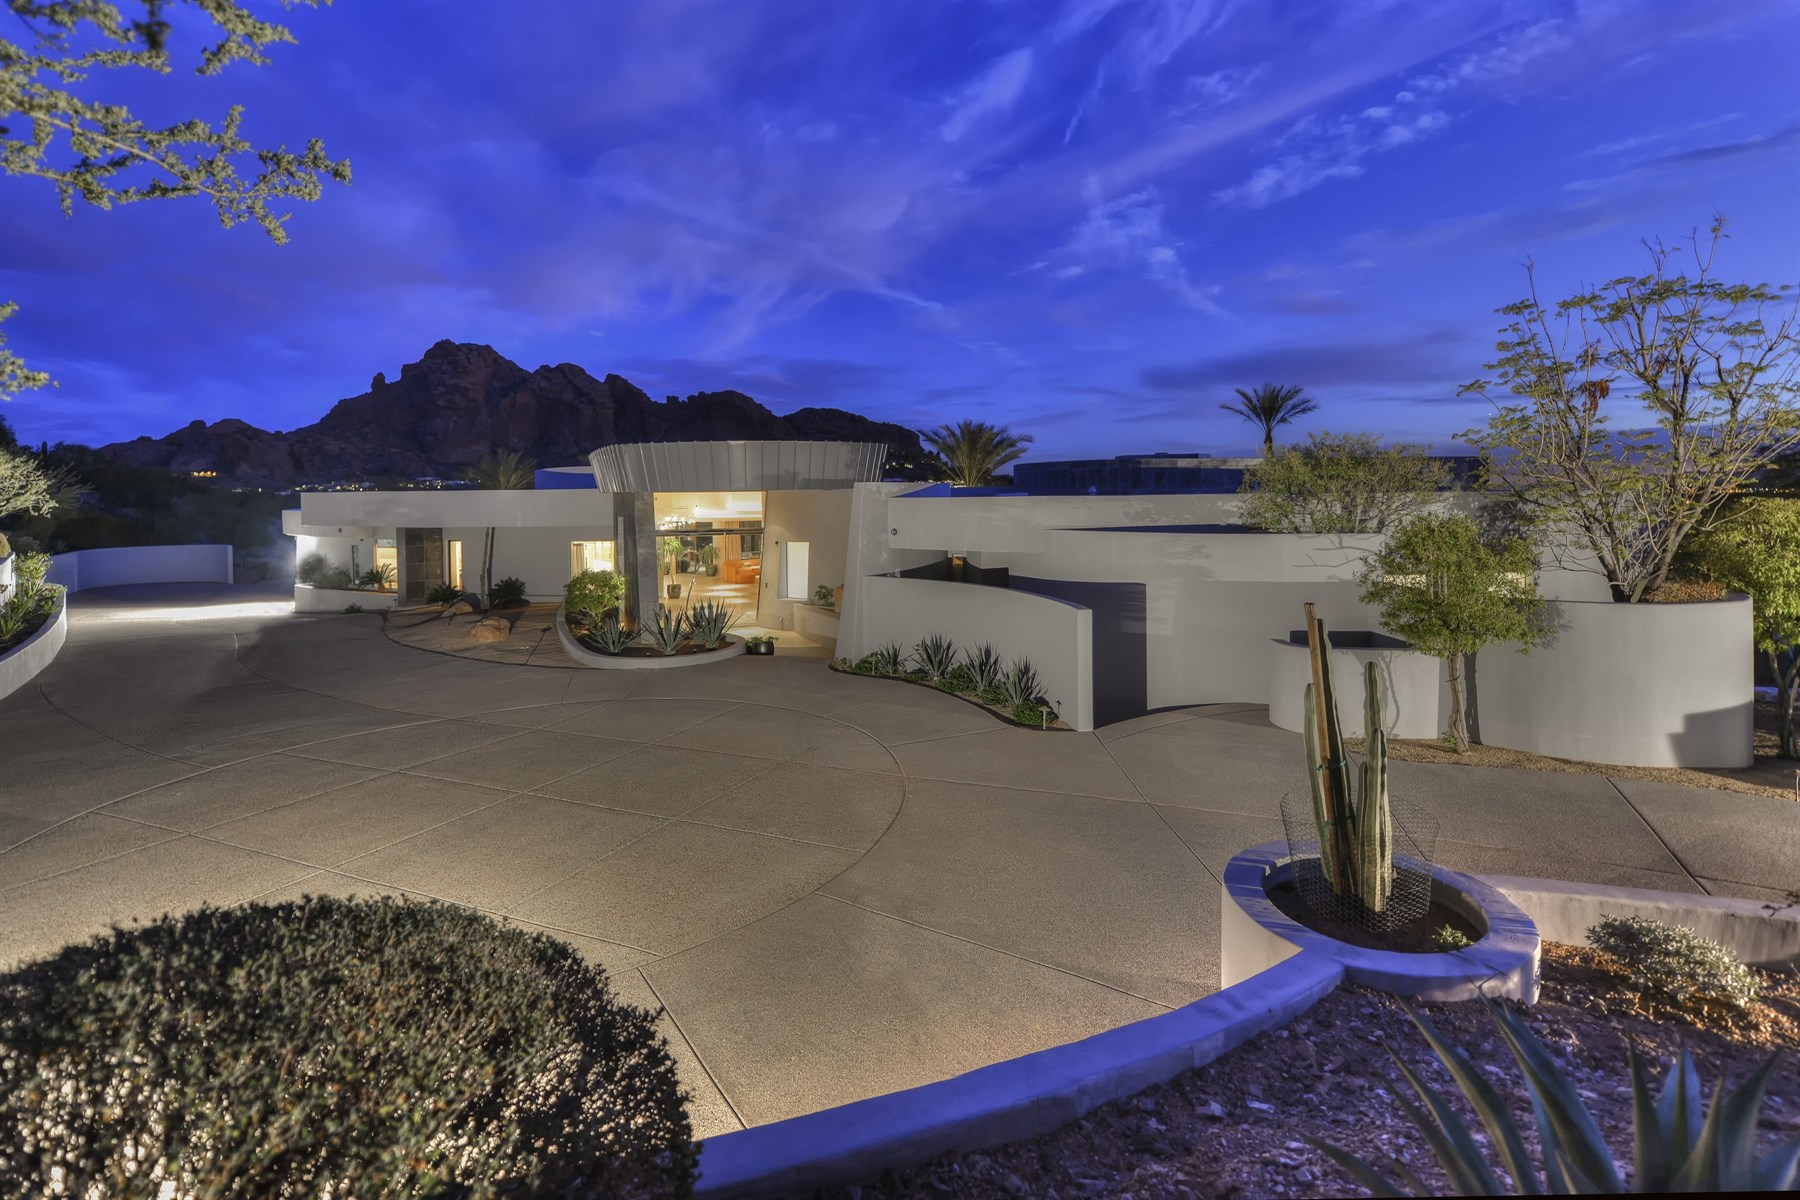 Einfamilienhaus für Verkauf beim Breathtaking Custom Contemporary Includes Holistic Views Of The Praying Monk 6021 N 44th Street Paradise Valley, Arizona, 85253 Vereinigte Staaten